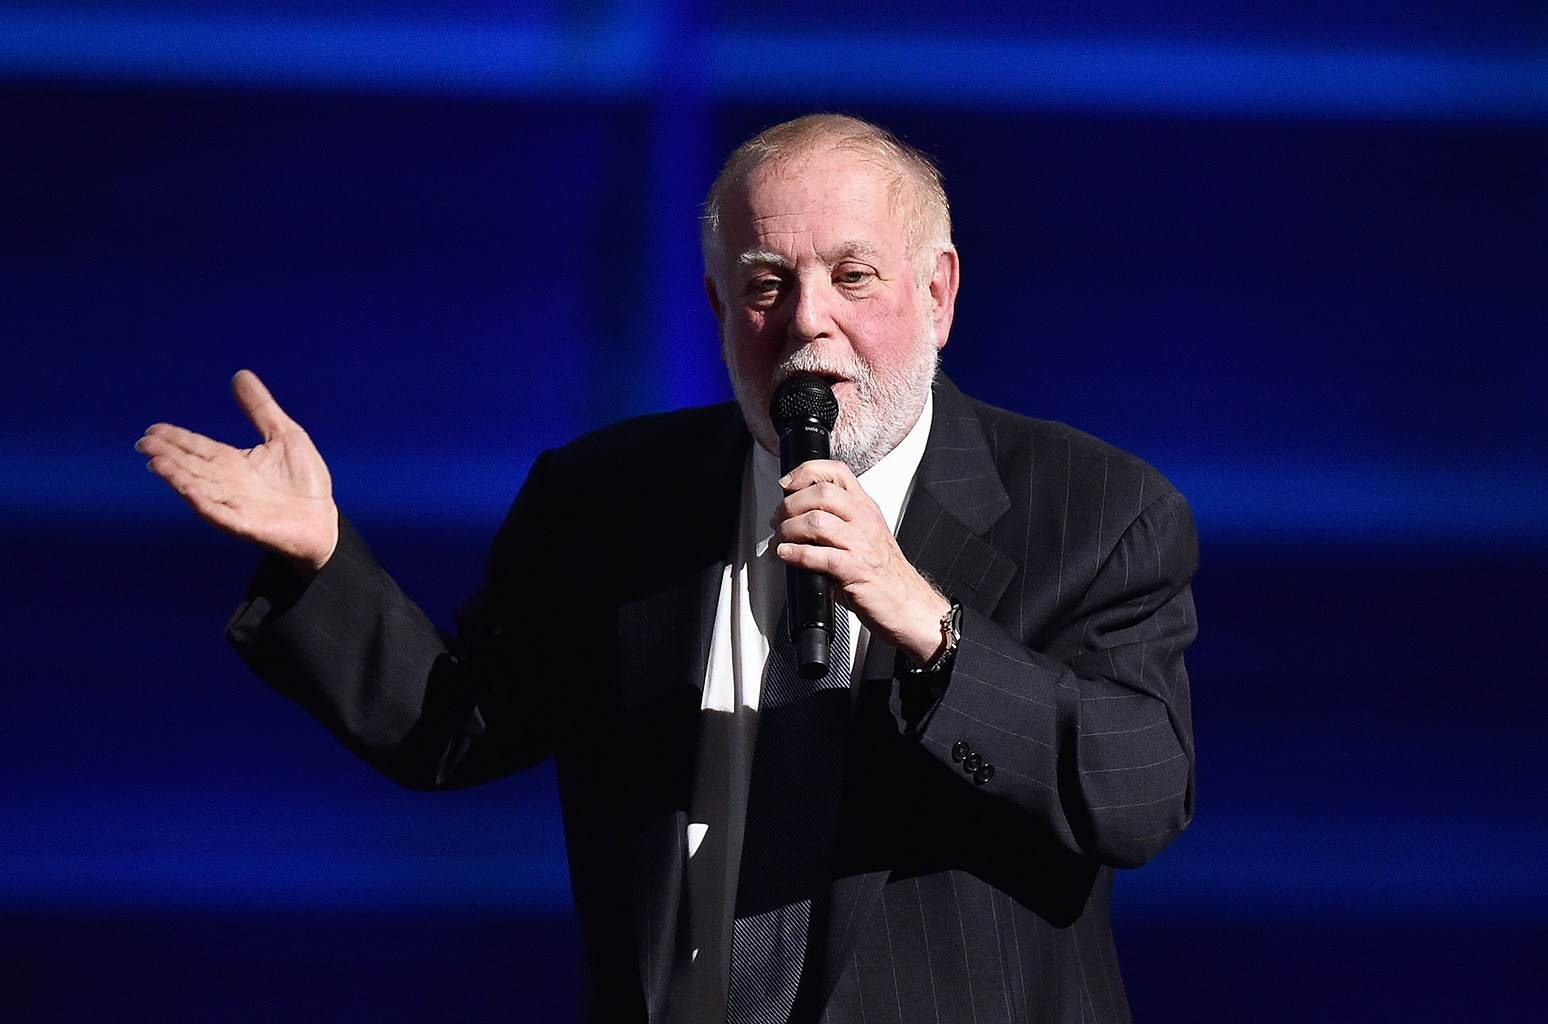 Ken Ehrlich speaks onstage during The 58th Grammy Awards at Staples Center on Feb. 15, 2016 in Los Angeles.